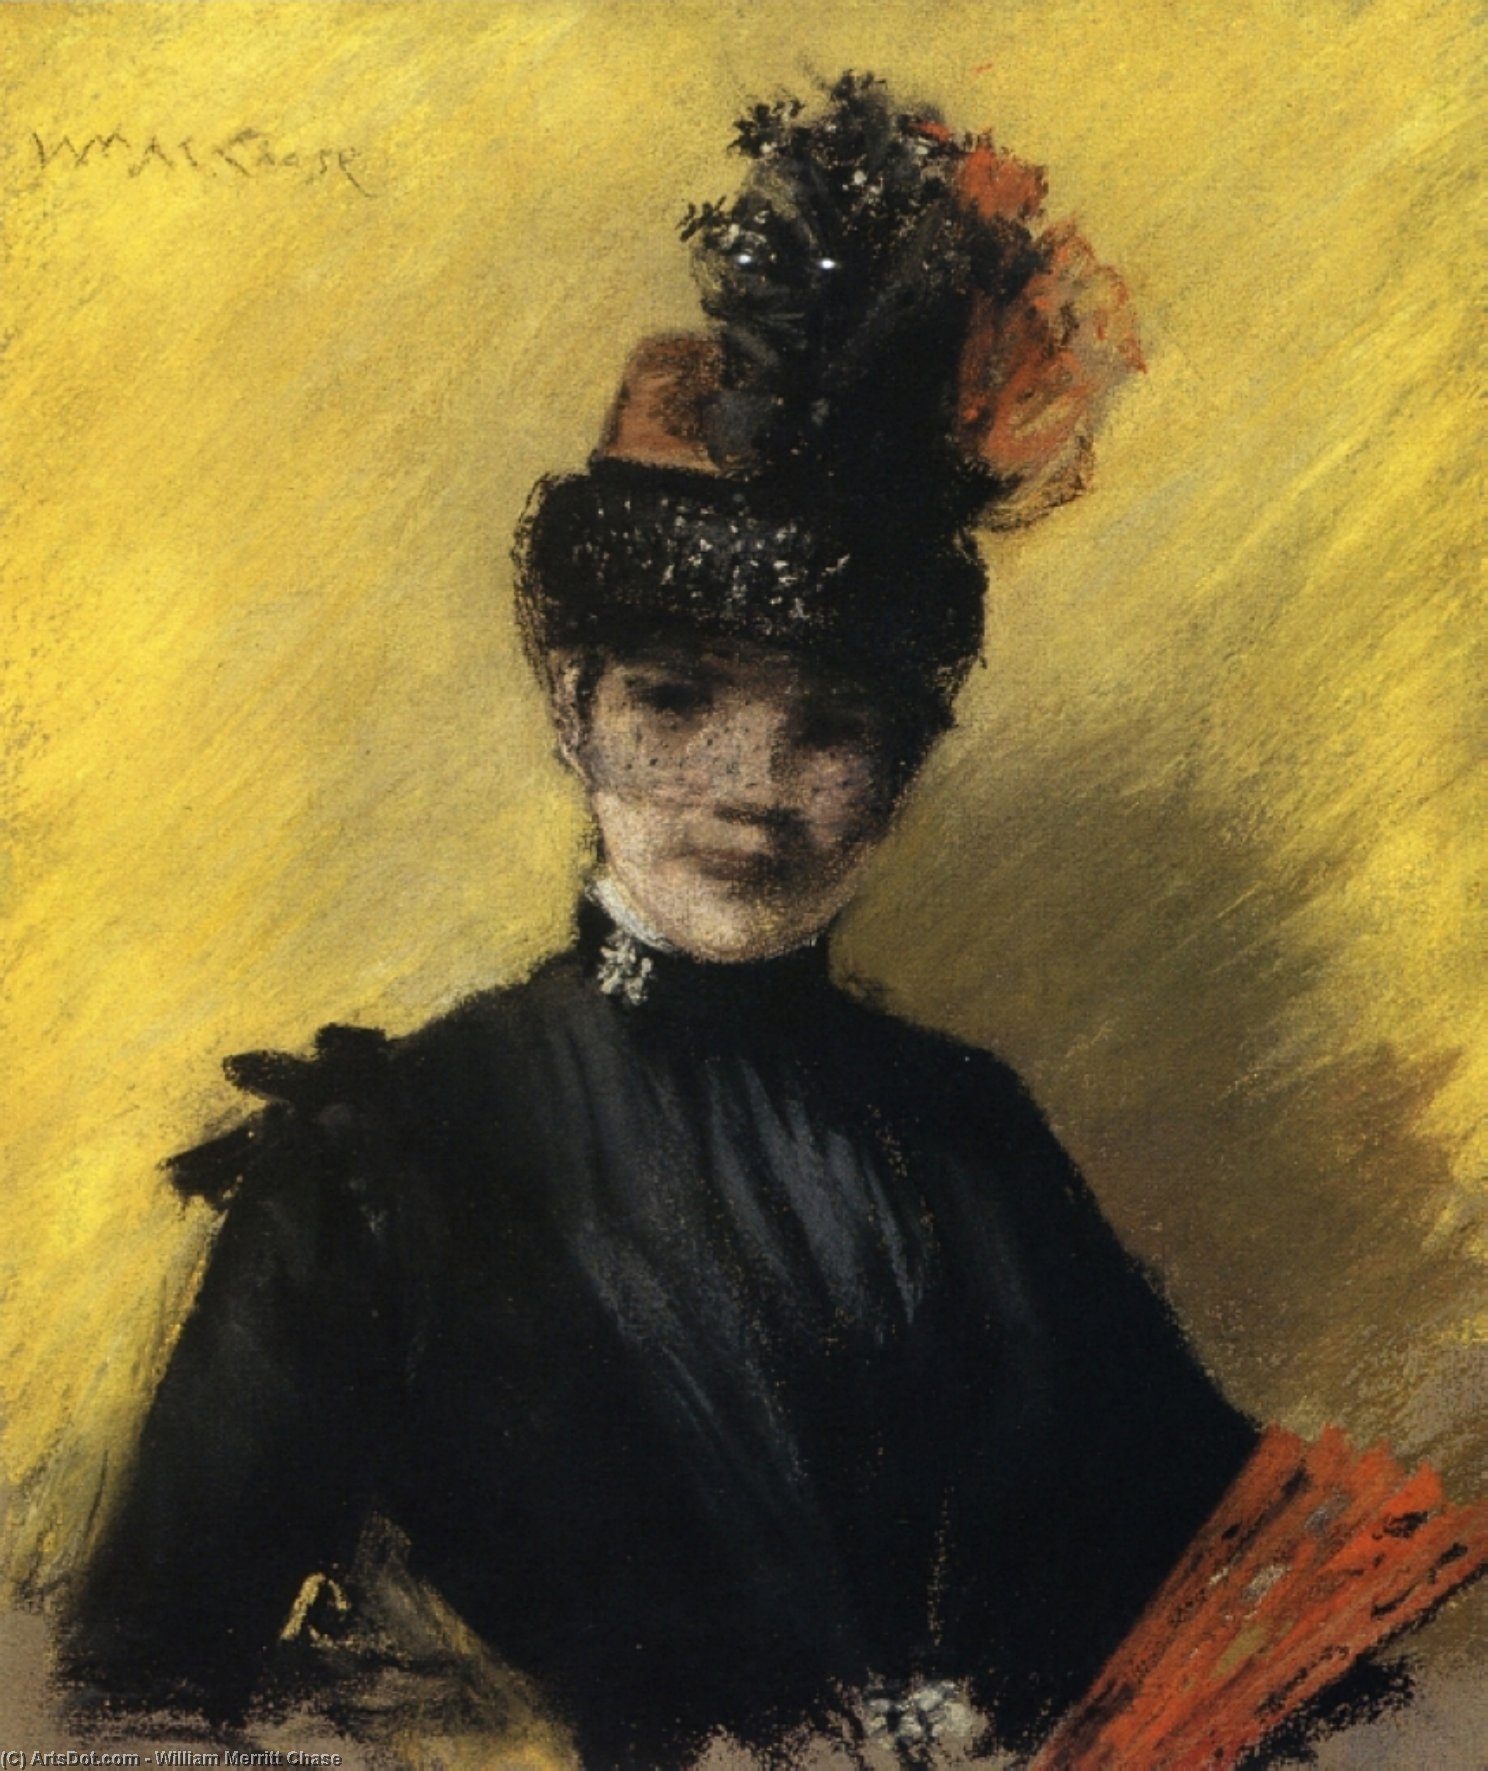 Étude des noire contre yello, 1886 de William Merritt Chase (1849-1916, United States)